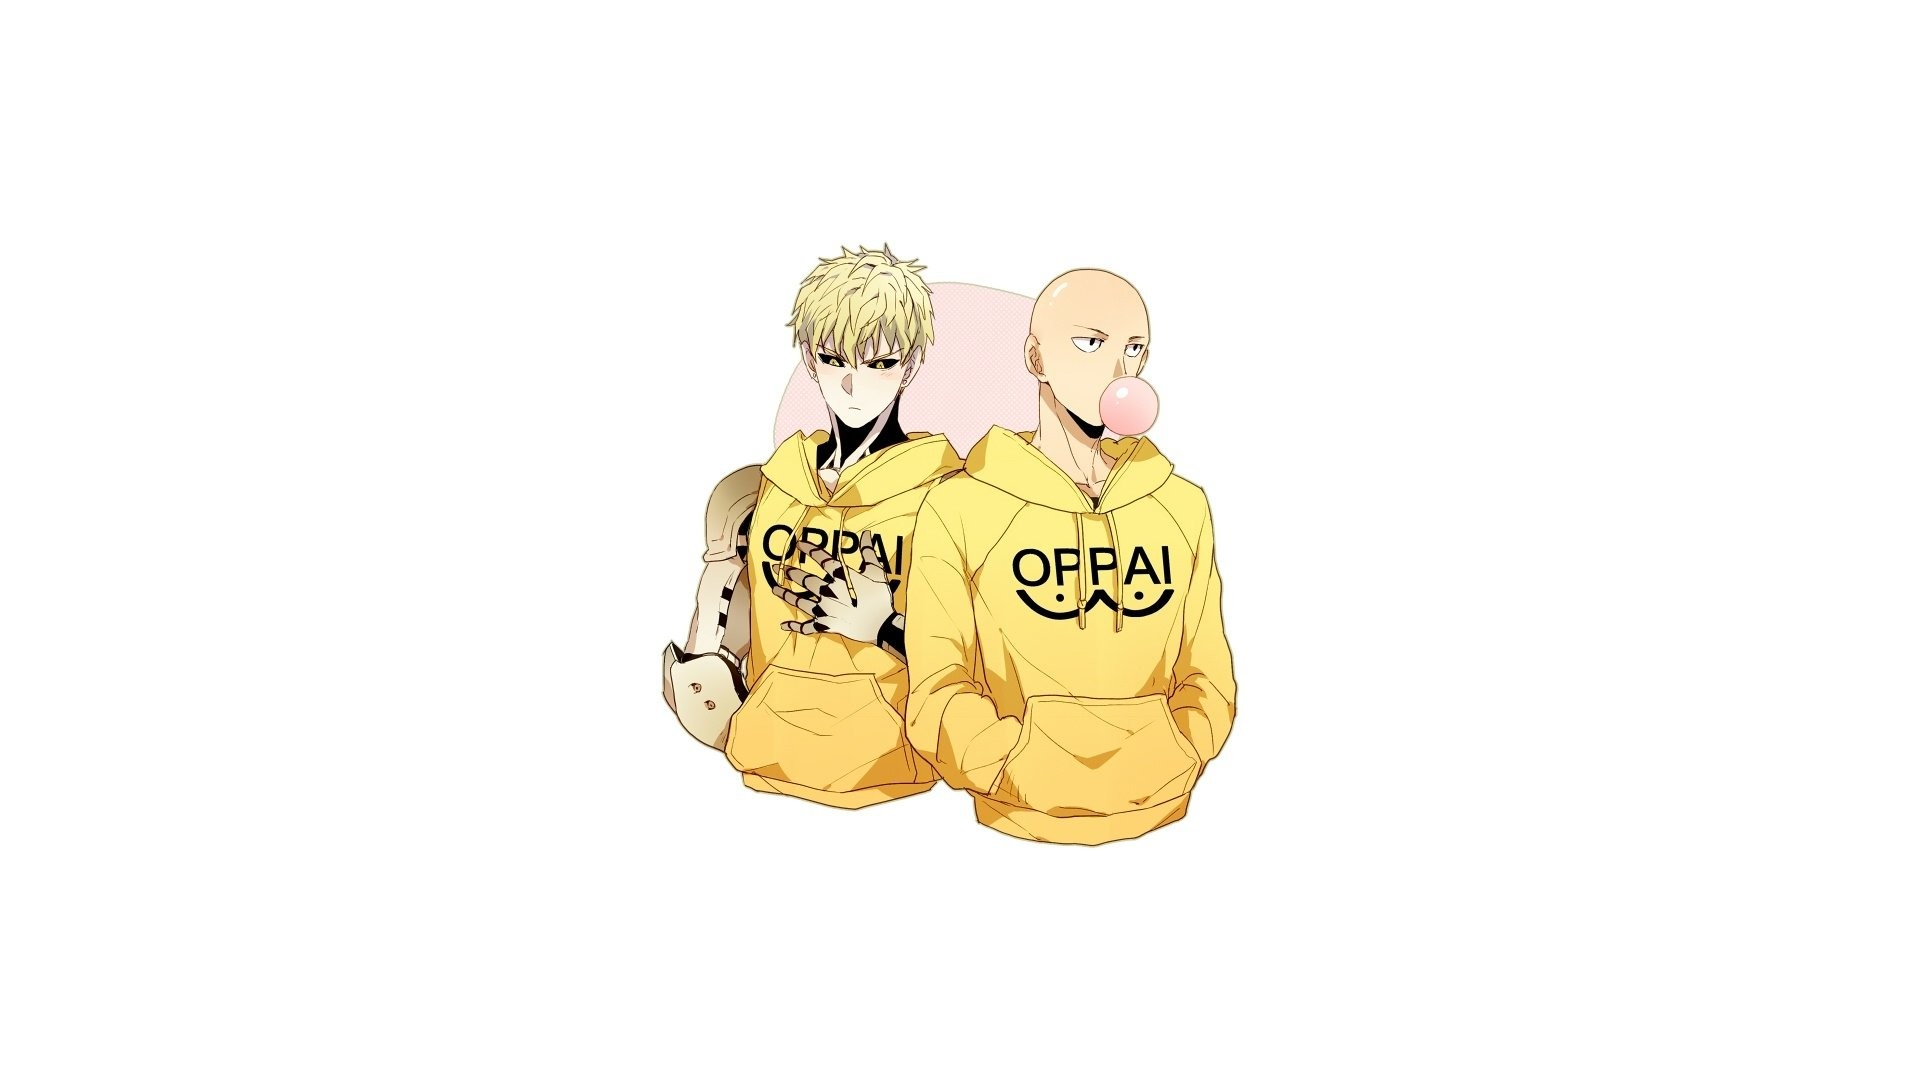 One punch man saitama wallpapers 76 images - Funny one punch man wallpaper ...